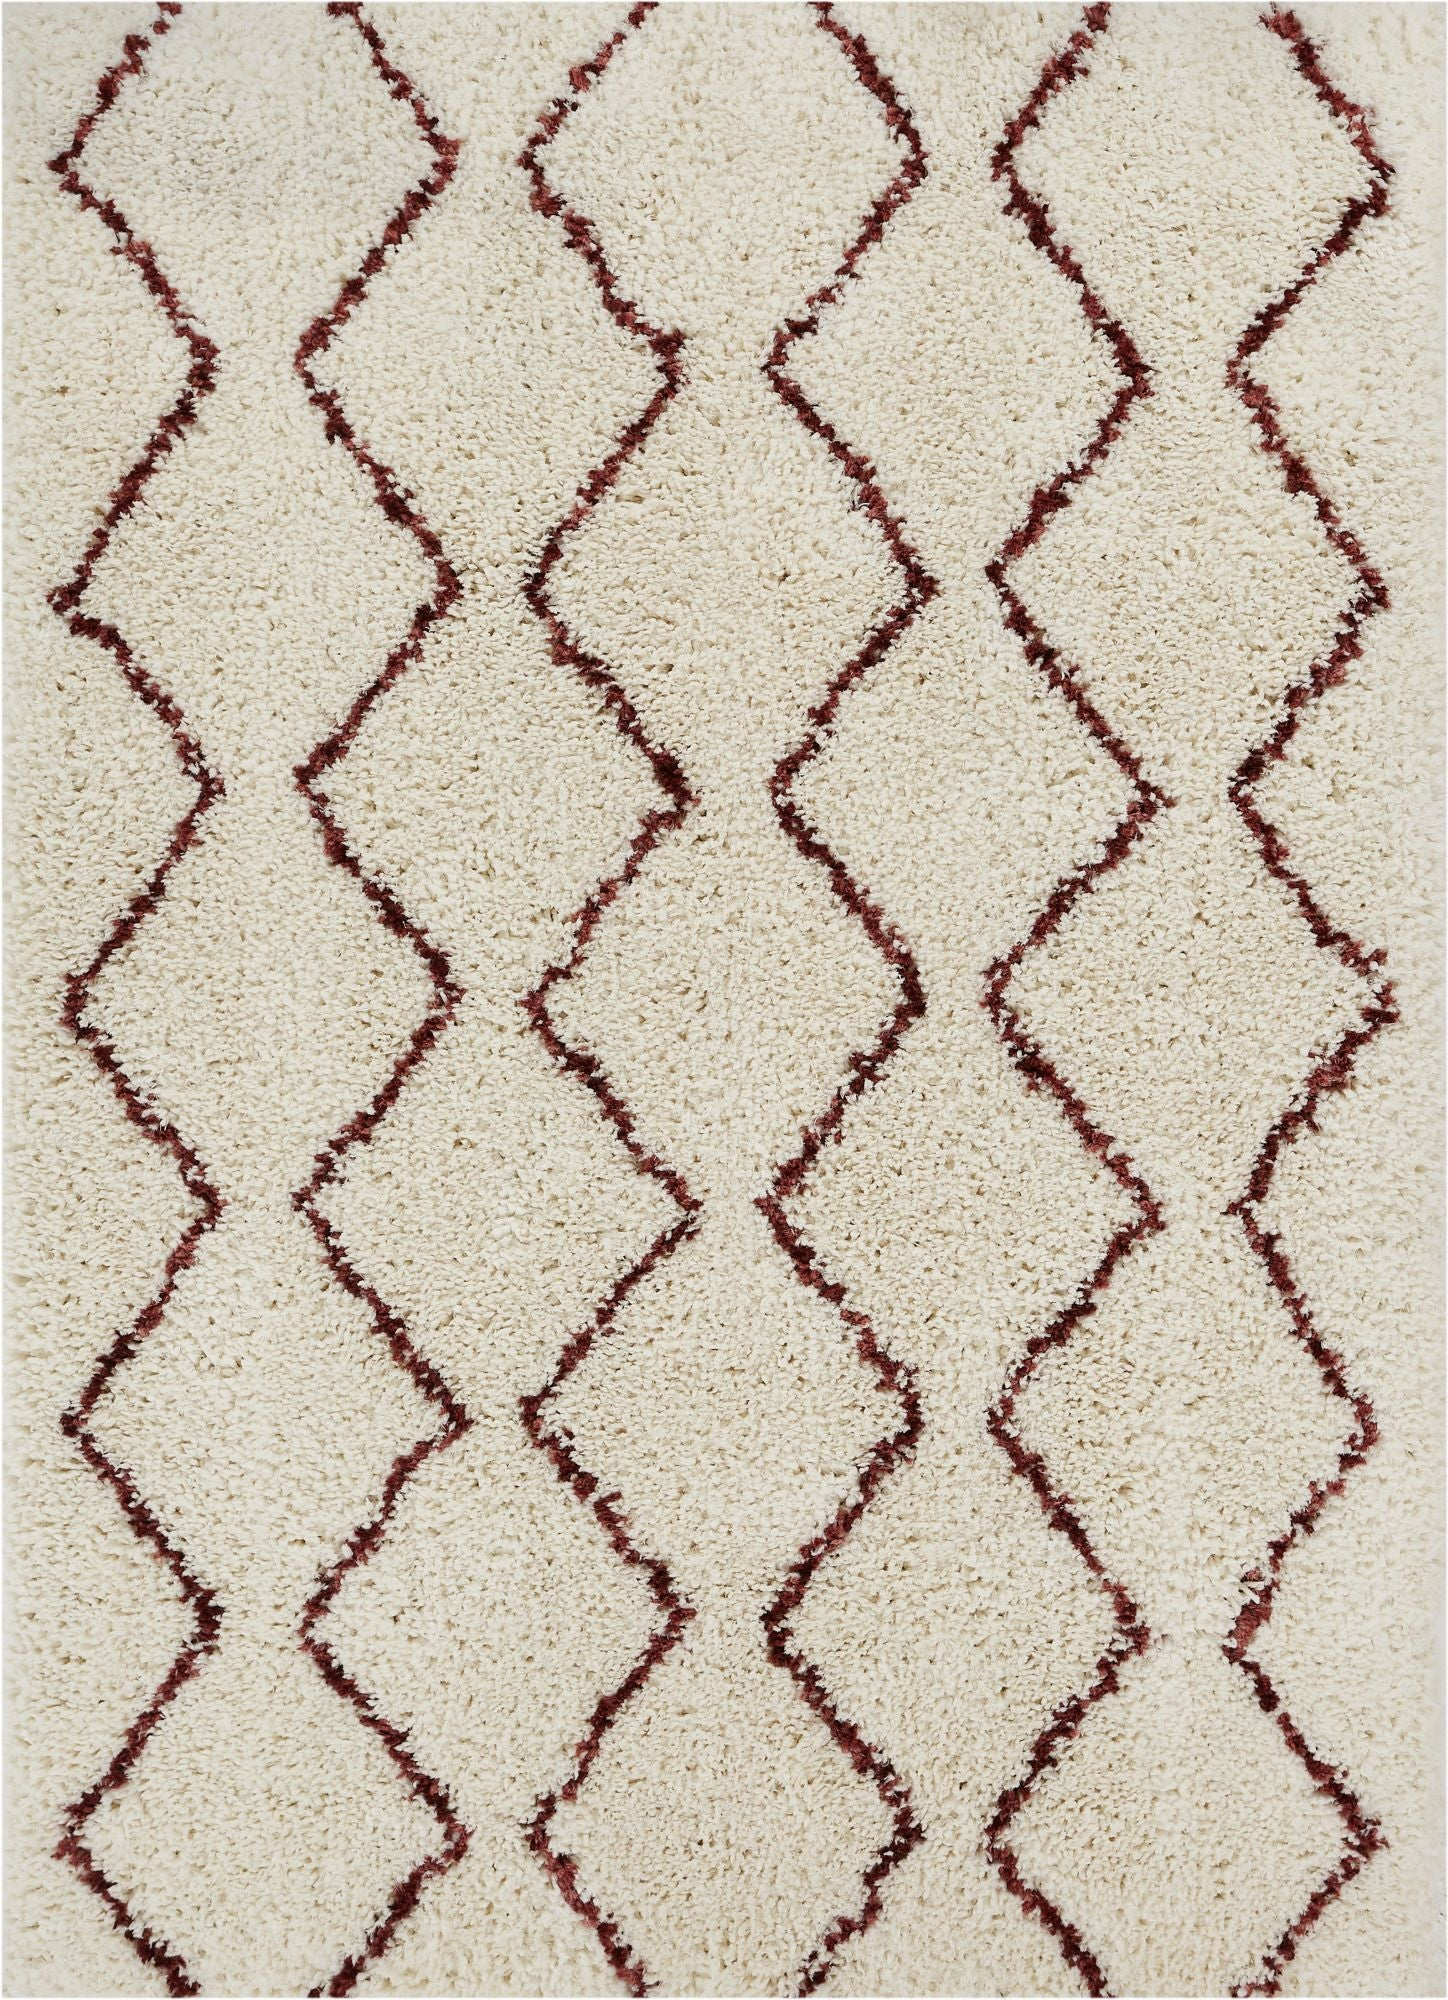 high with heels rug inspiration moroccan morals rugsusa chapter free shag friday cruelty and